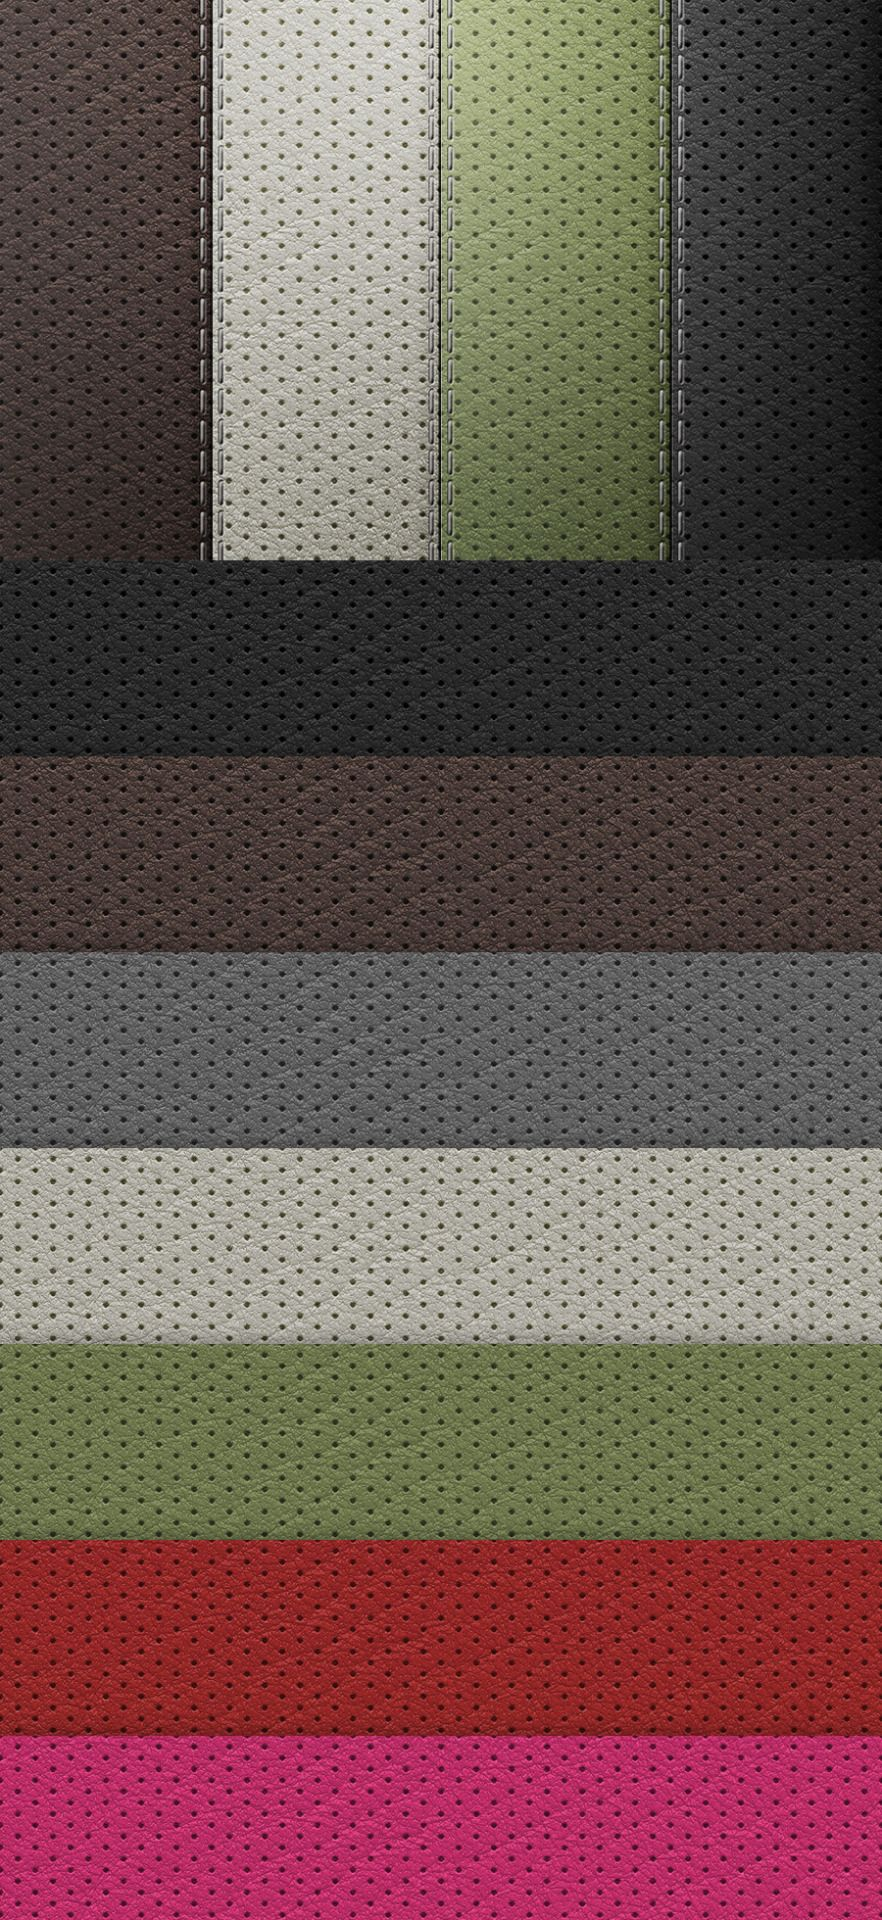 Perforated Leather – Free Seamless Texture Set